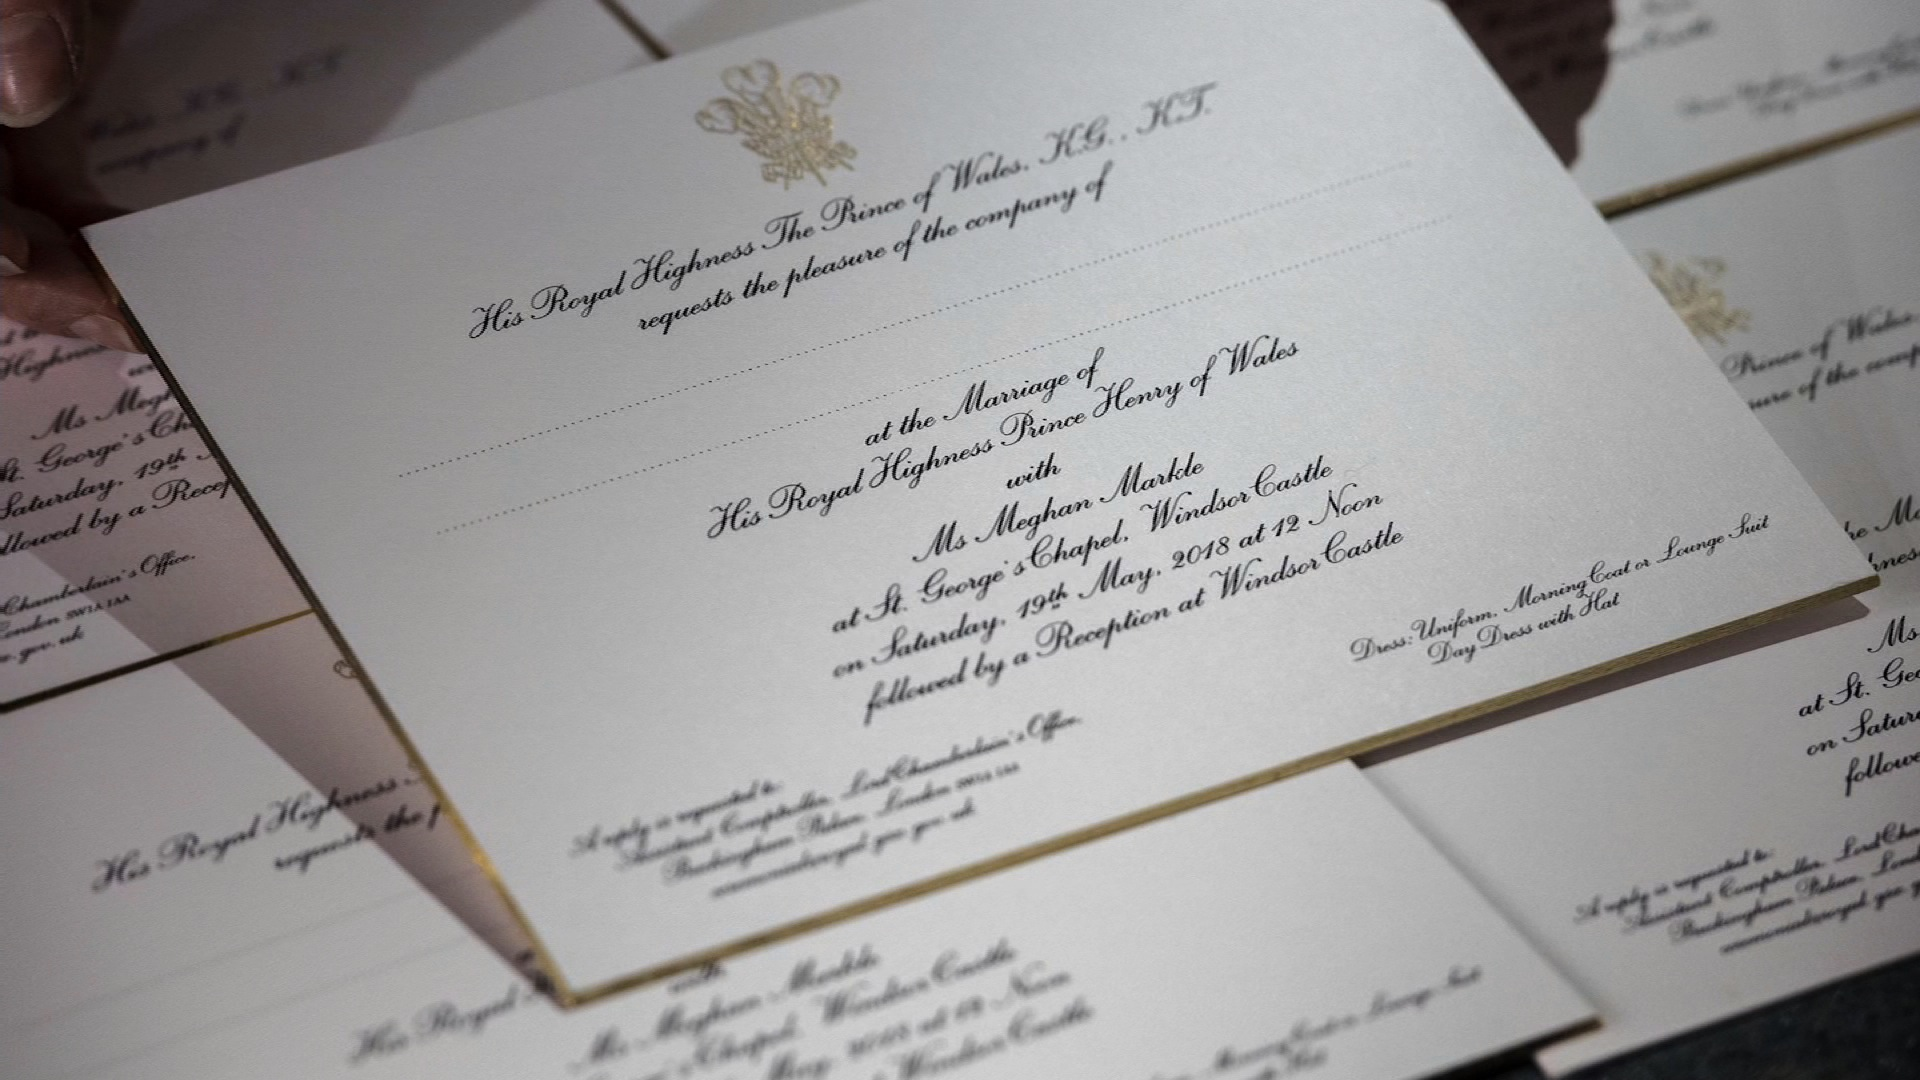 See royal wedding invitations embossed in gold - CNN Video